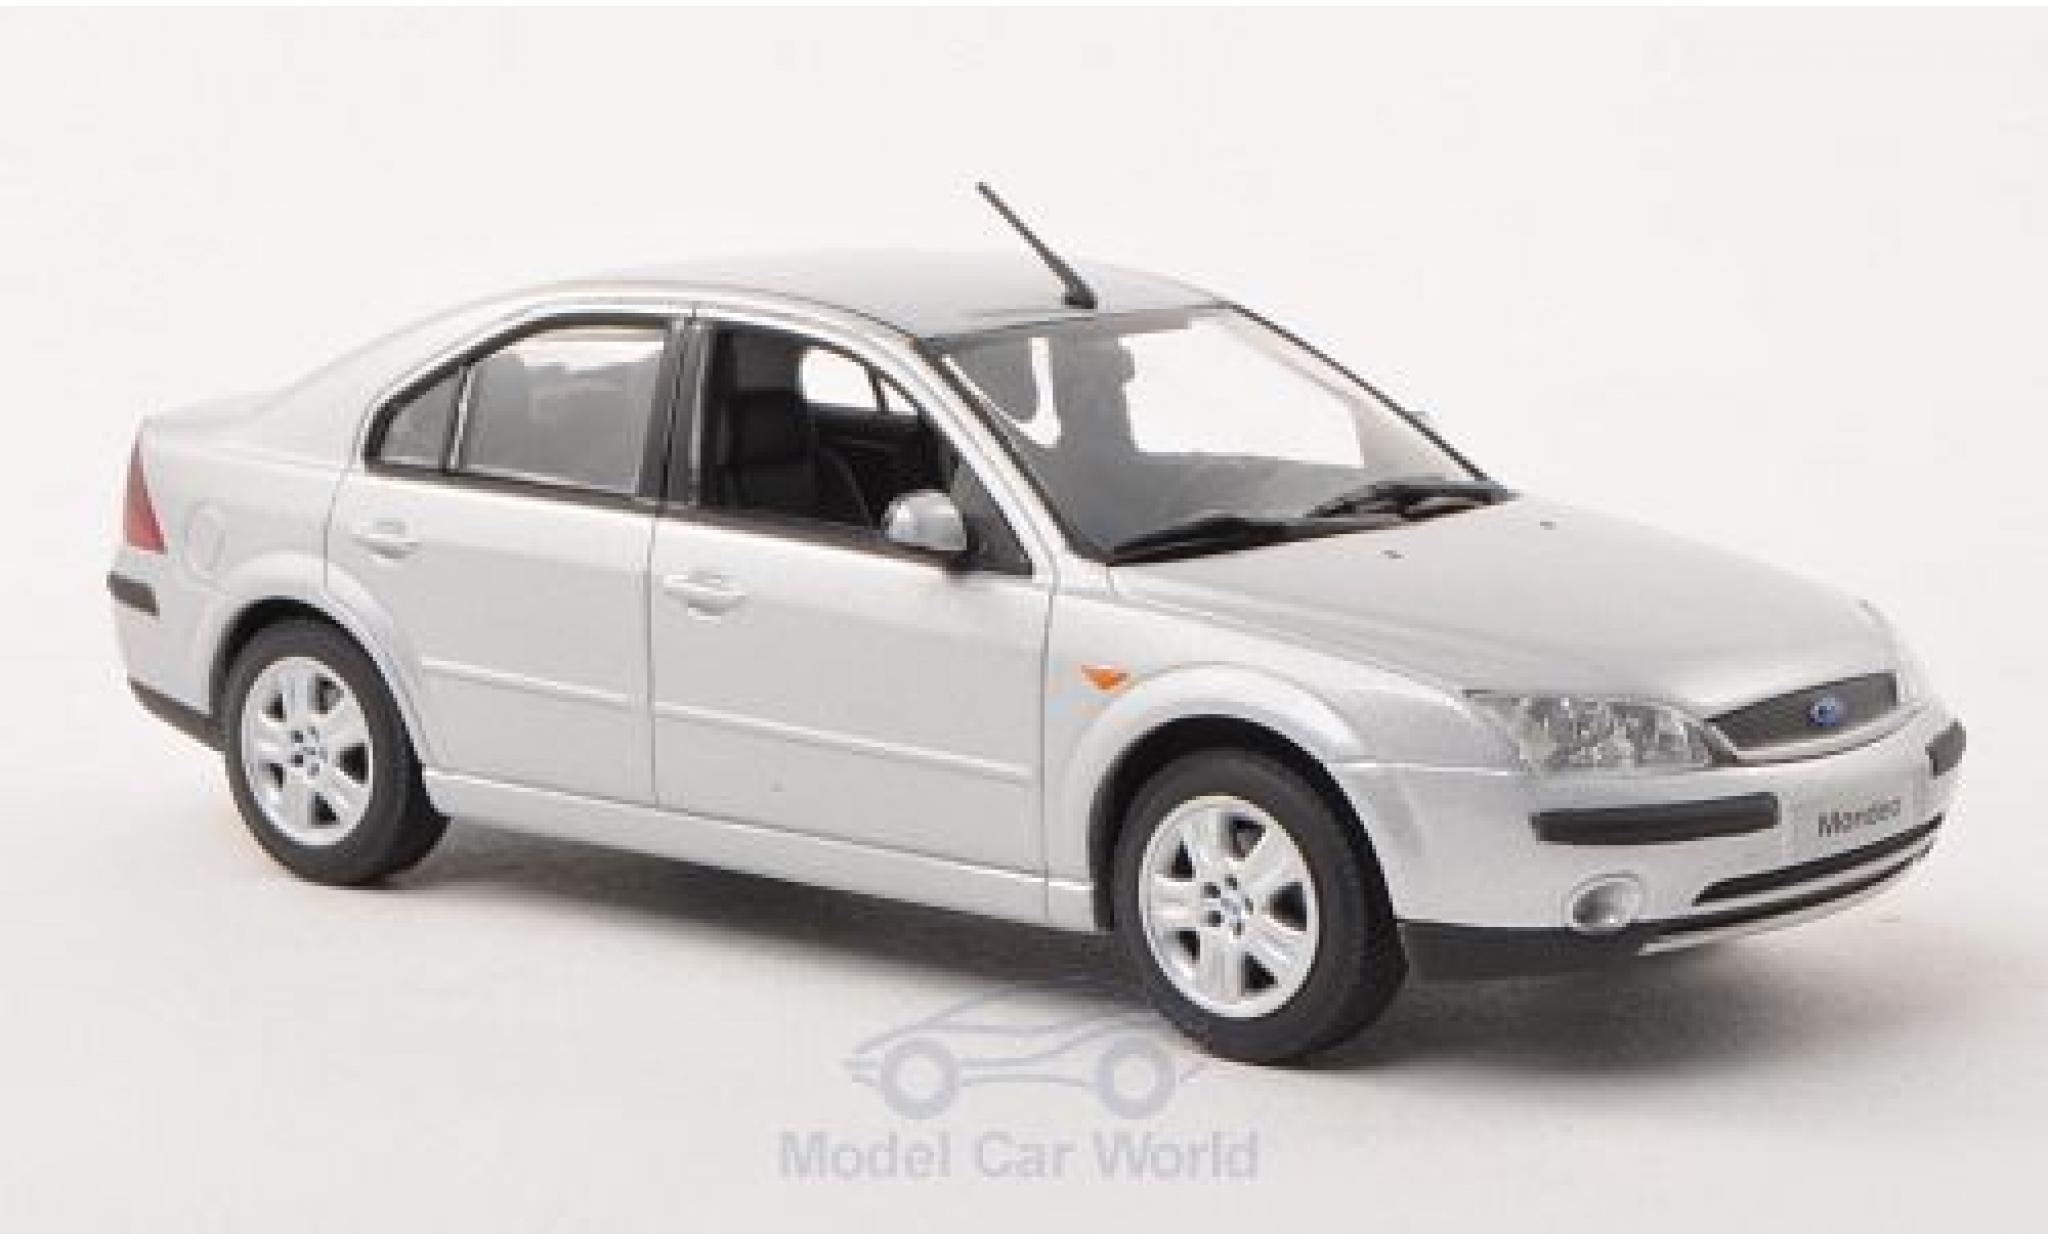 Ford Mondeo 1/43 Minichamps MKIII grise 2001 Stufenheck